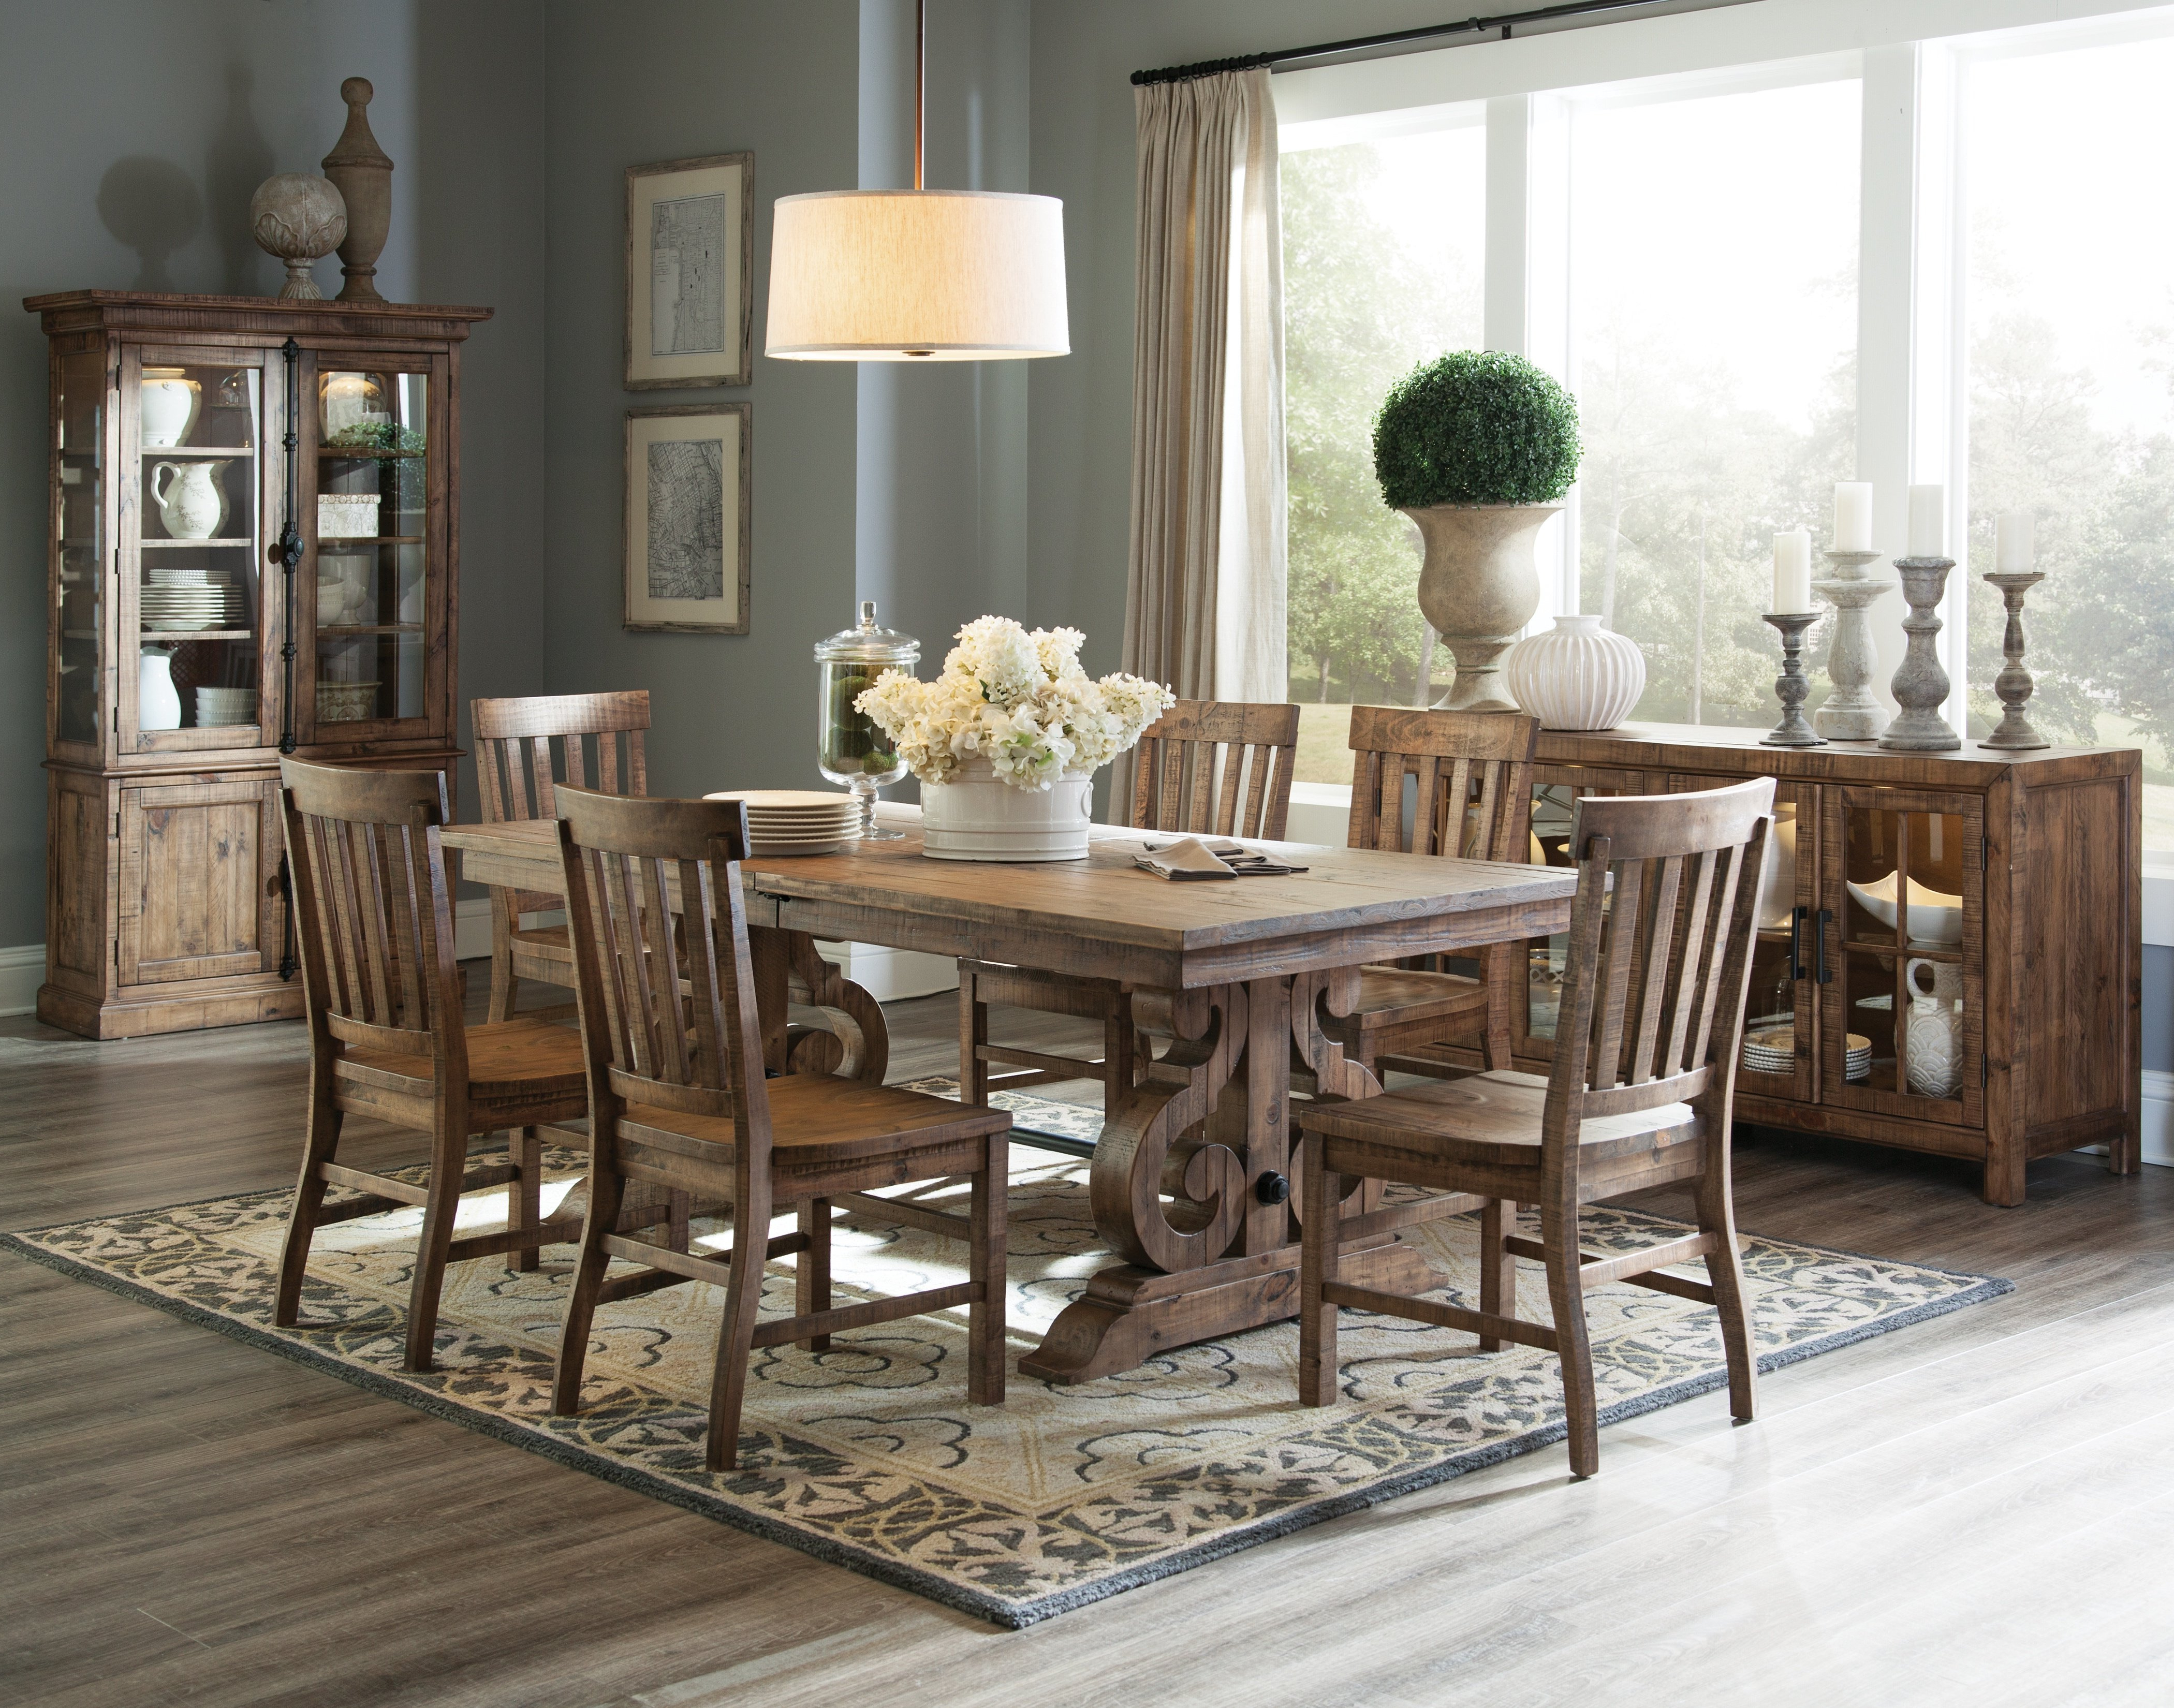 Most Popular 7 Piece Dining Set For Queener 5 Piece Dining Sets (View 4 of 20)